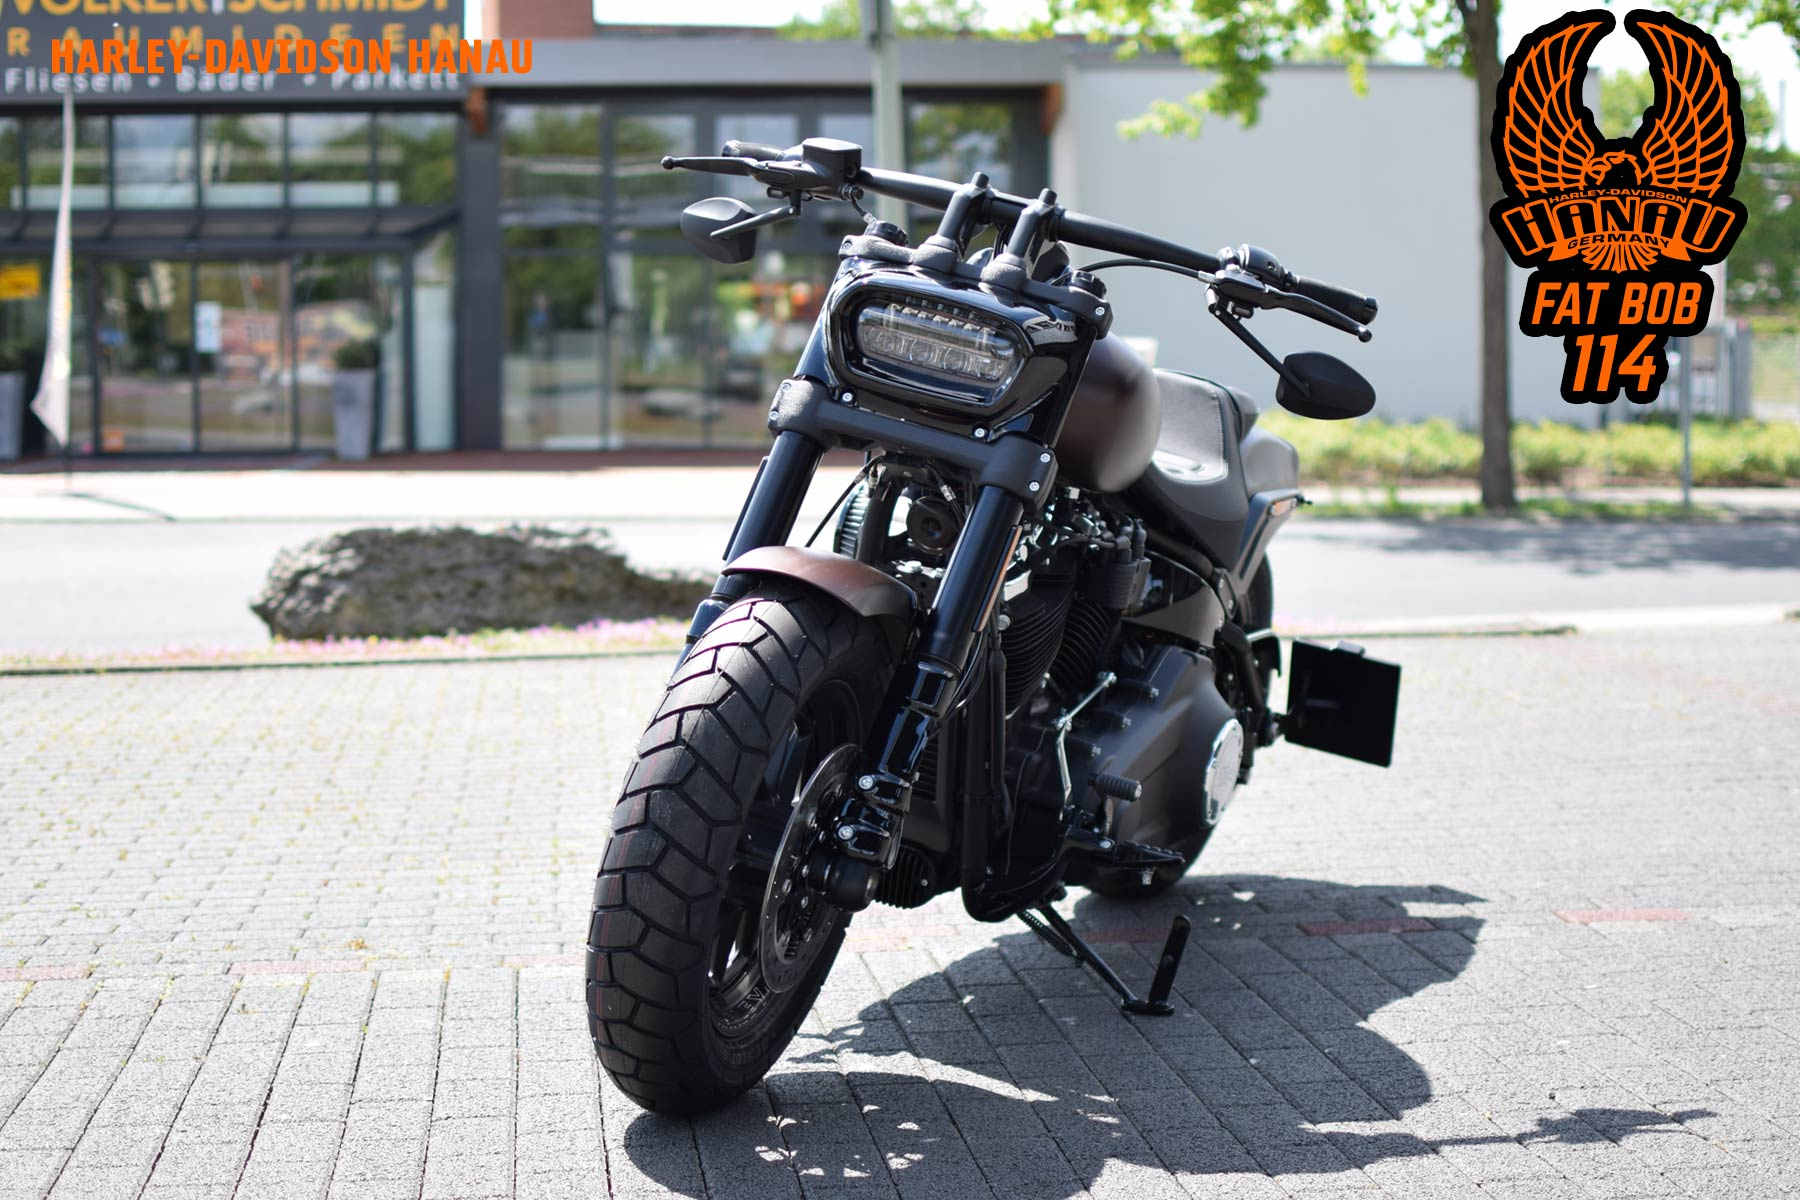 Harley-Davidson Hanau Fat Bob 114 Customclub